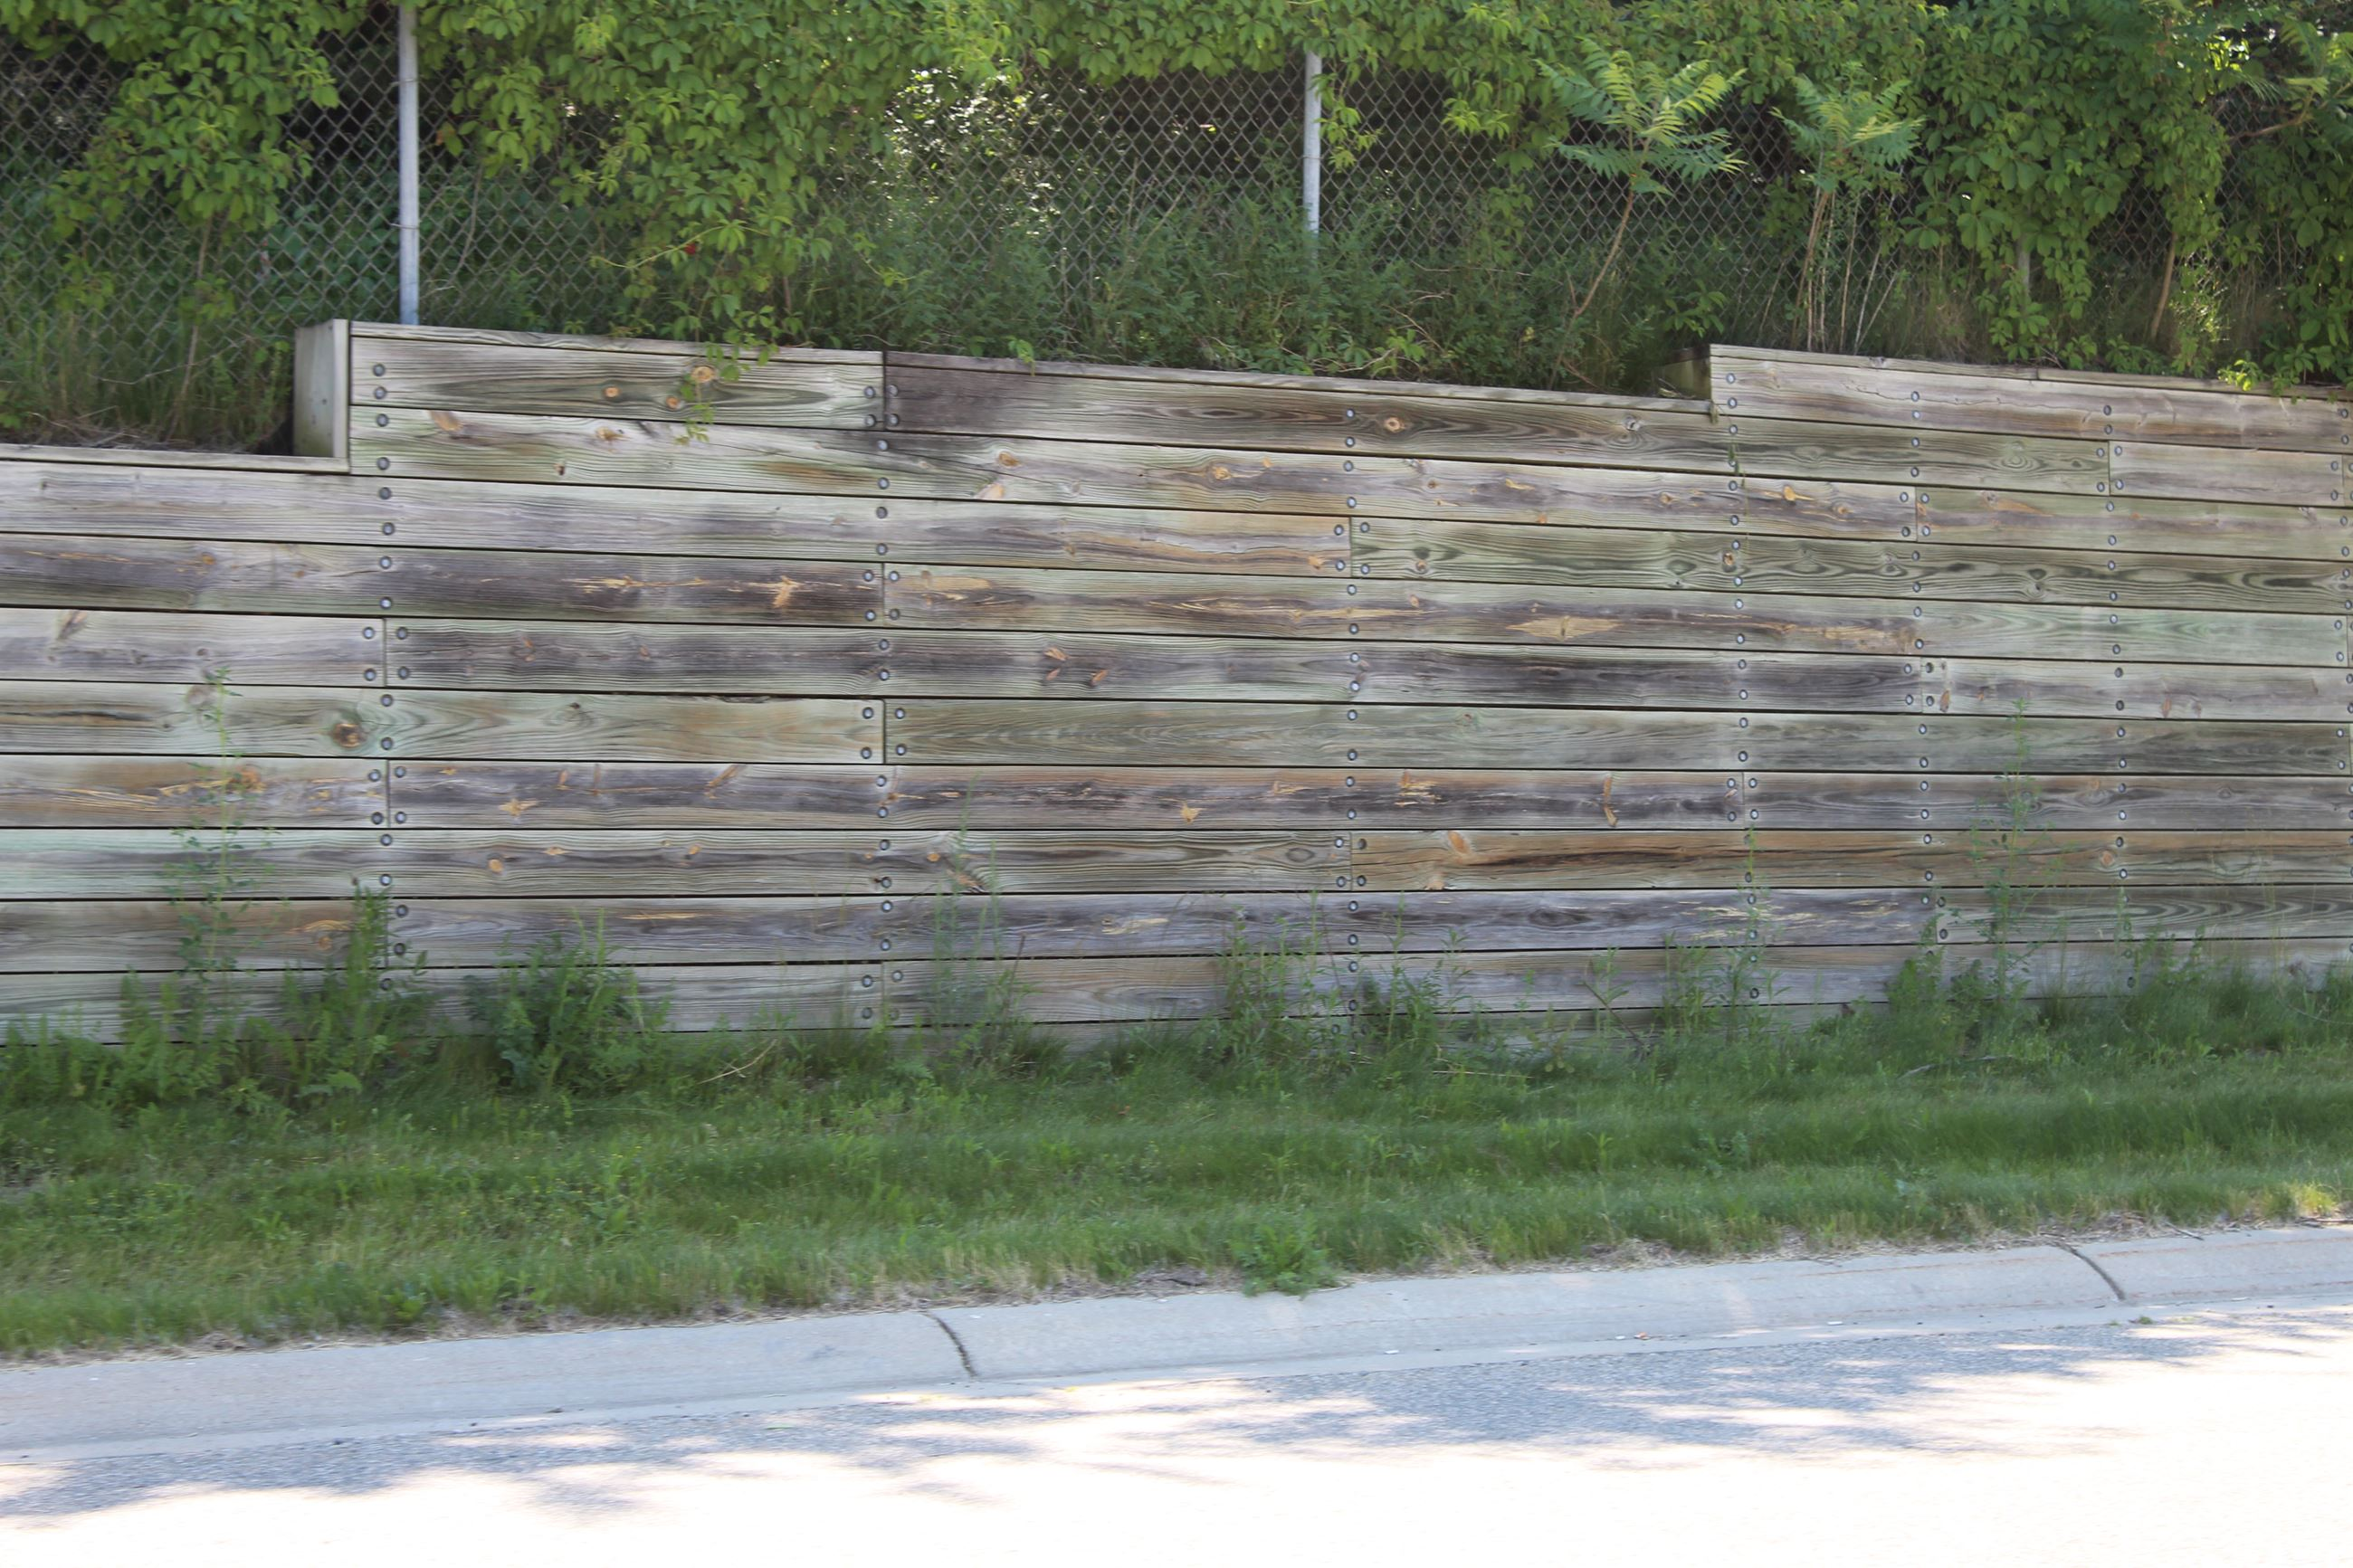 Retaining wall at North Holly and Belford Road Intersection